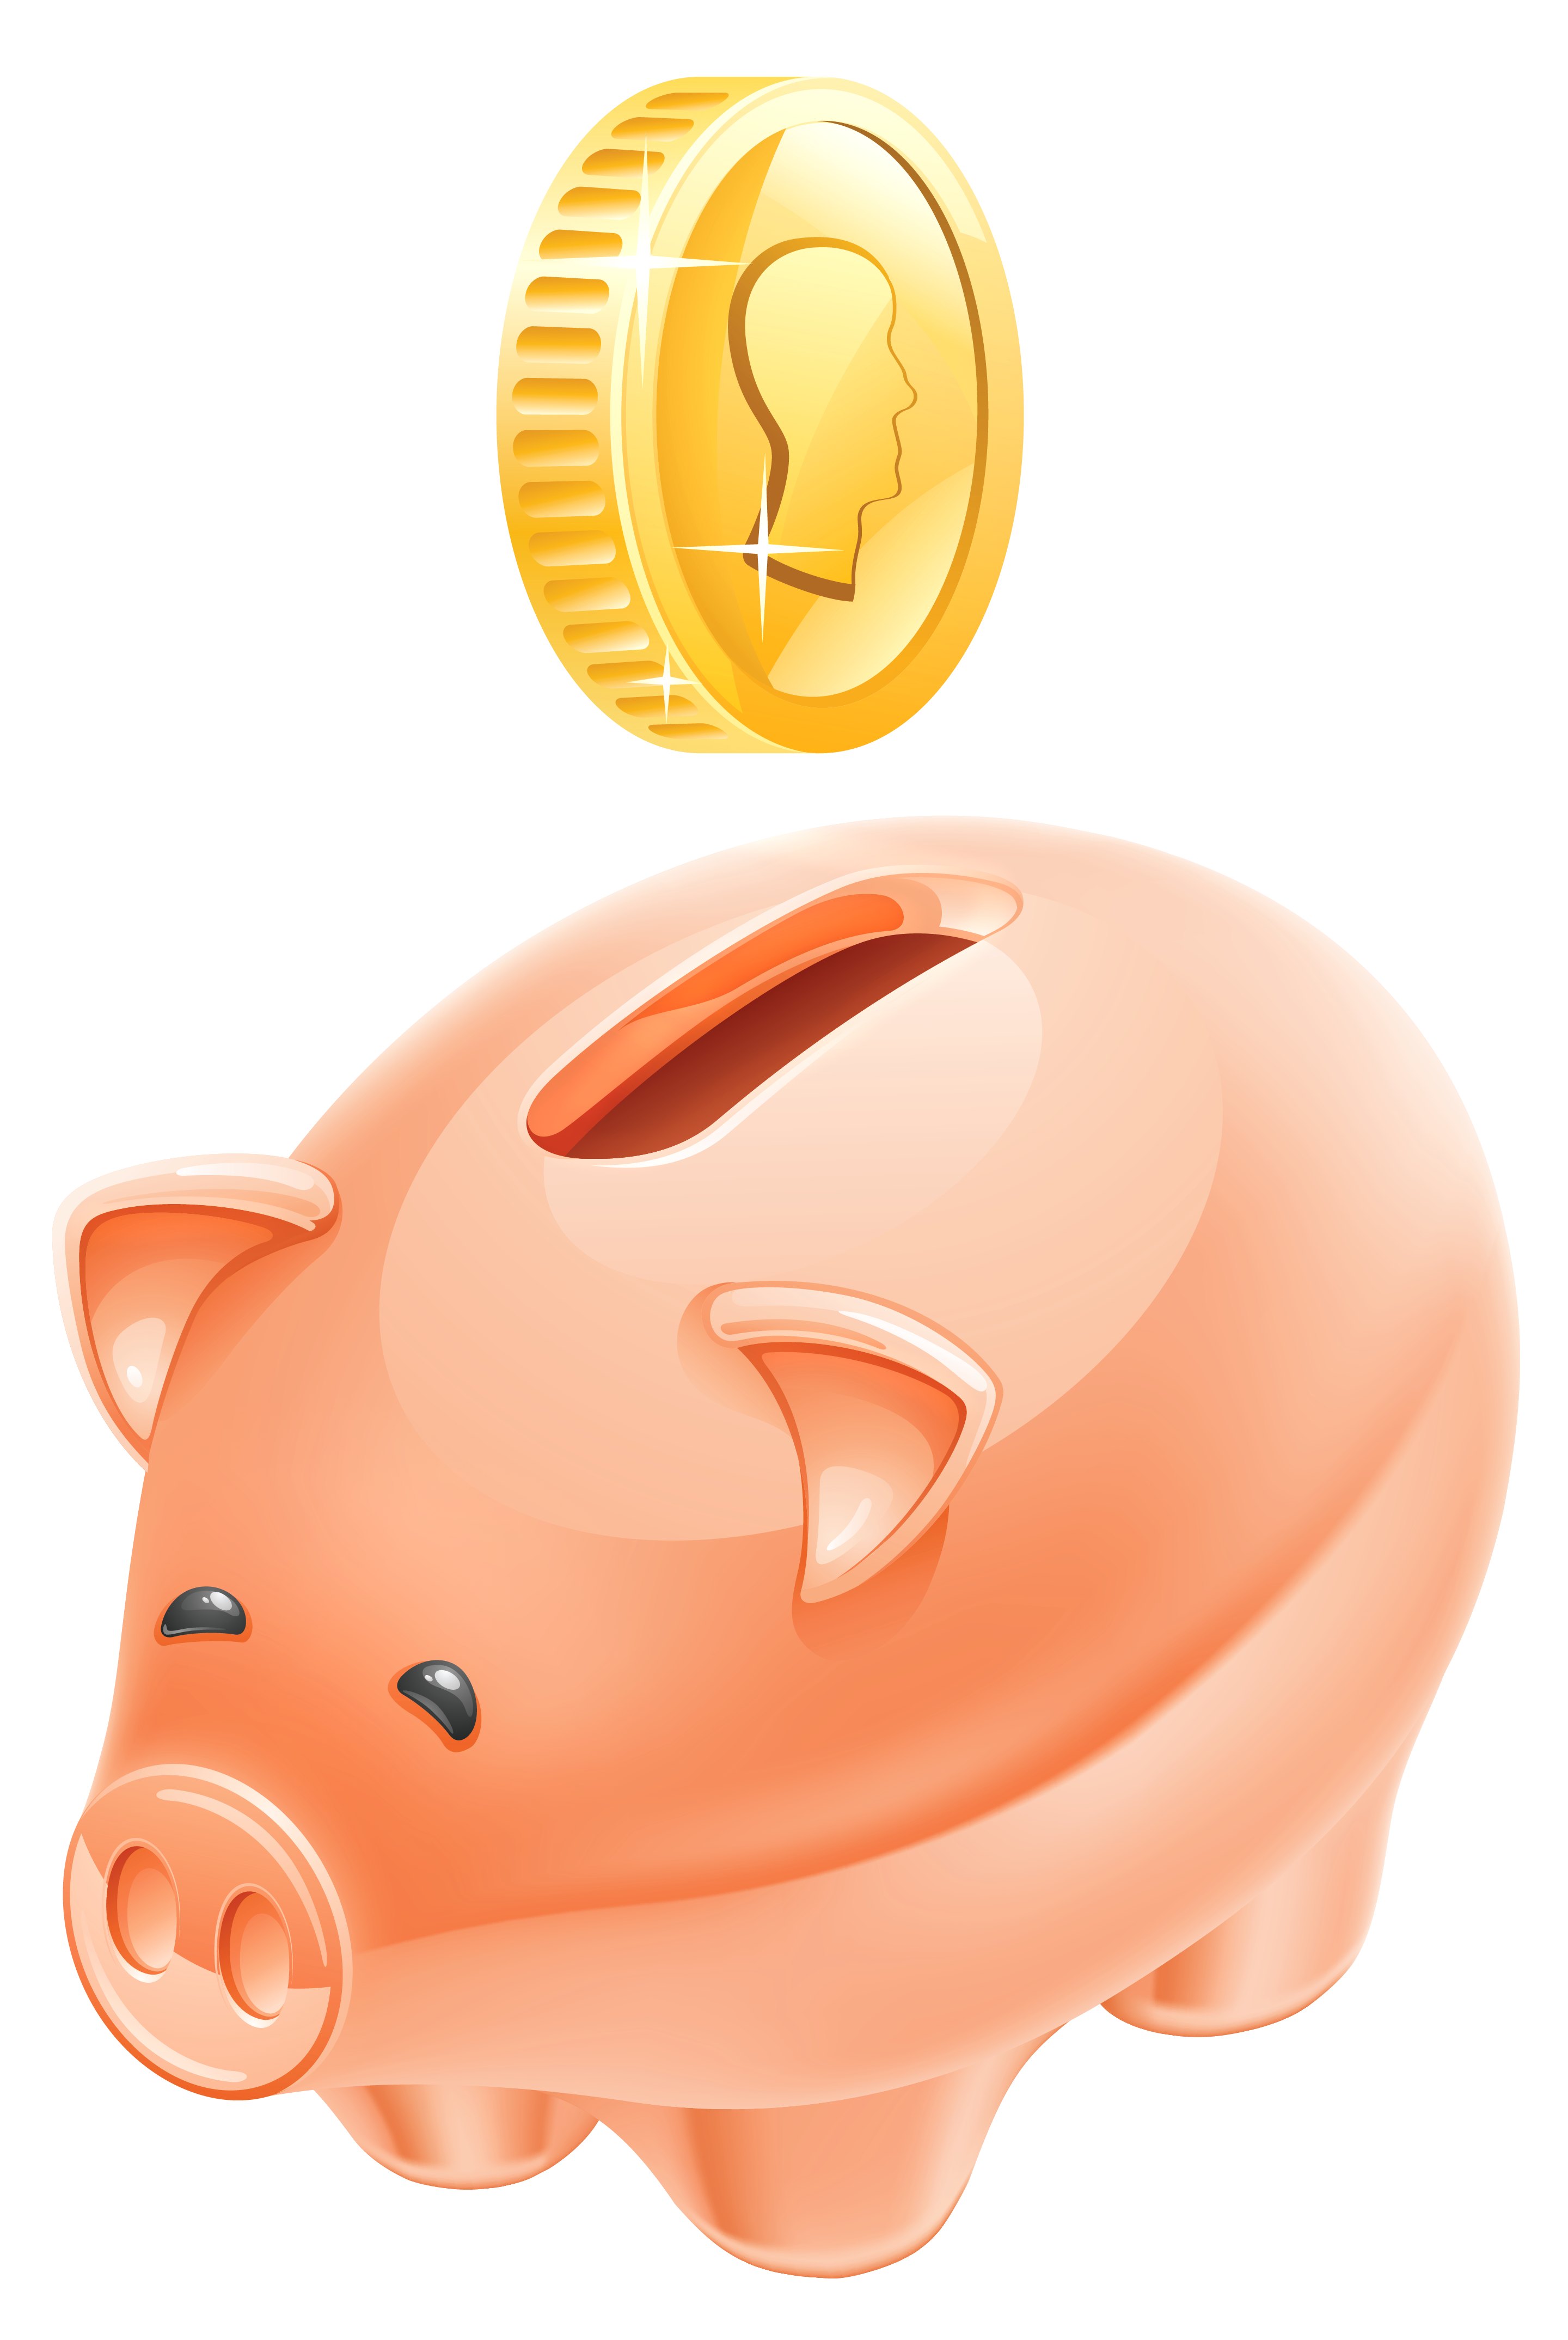 Penny bank clipart #13